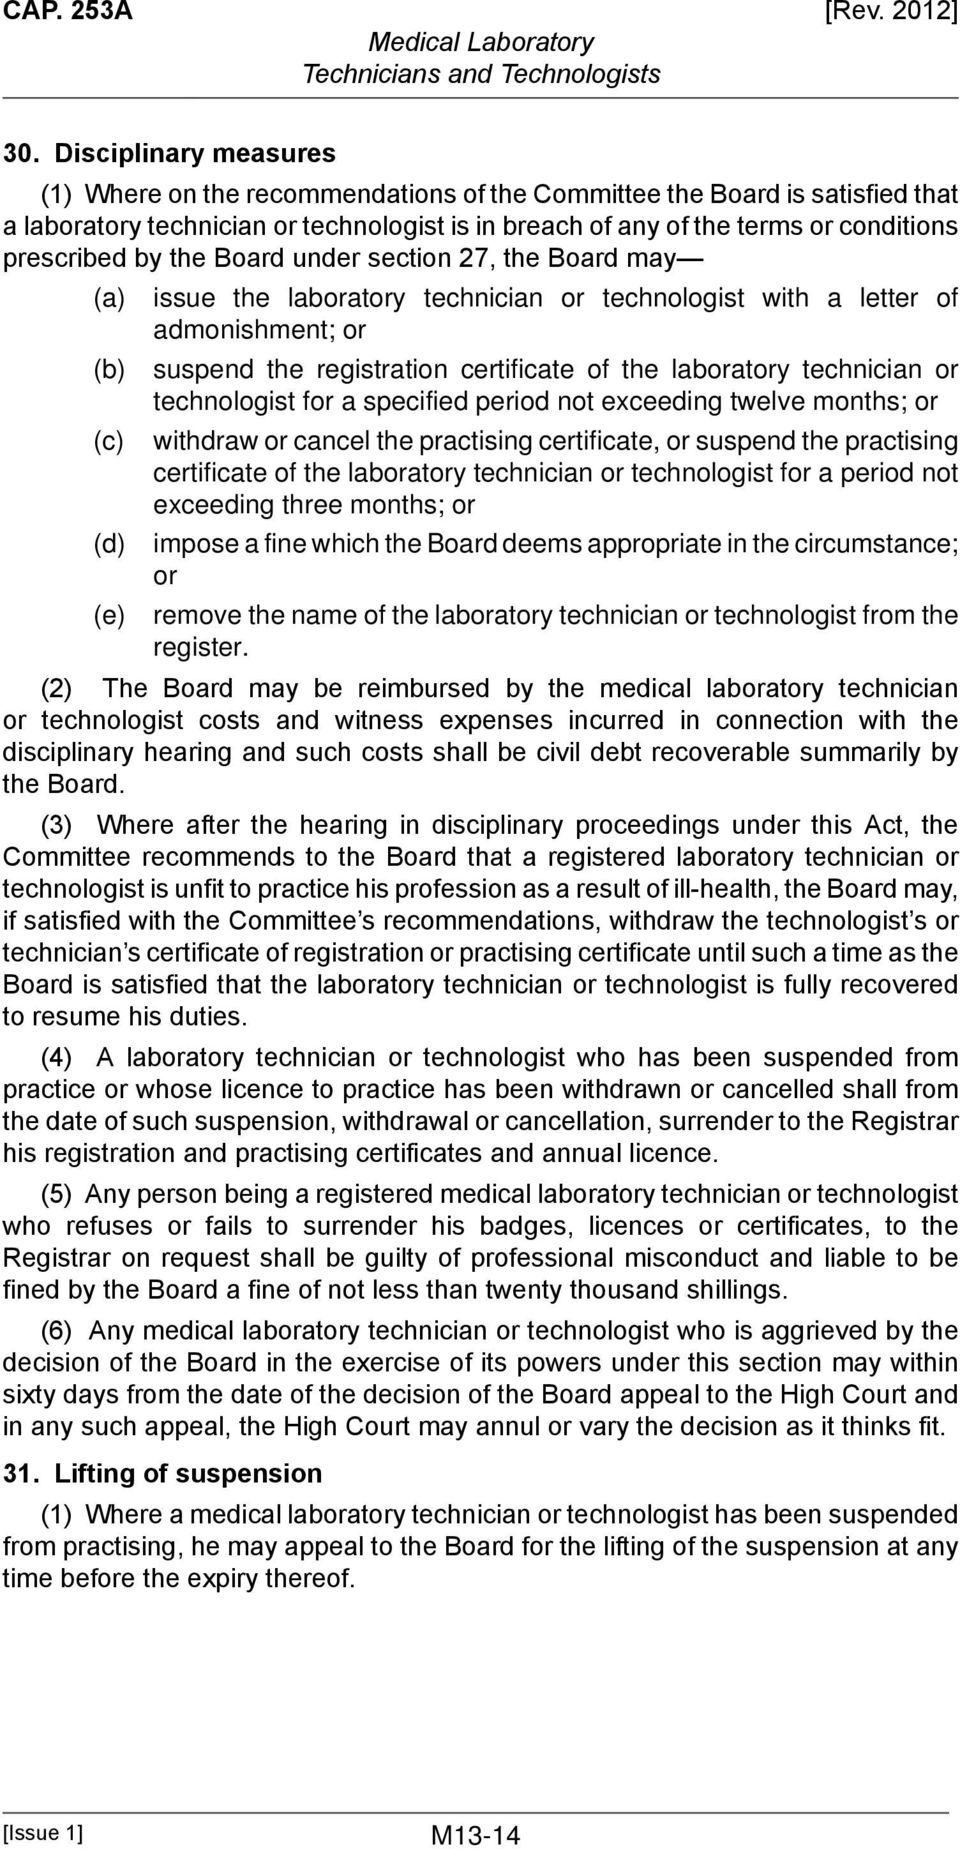 by the Board under section 27, the Board may (d) (e) issue the laboratory technician or technologist with a letter of admonishment; or suspend the registration certificate of the laboratory